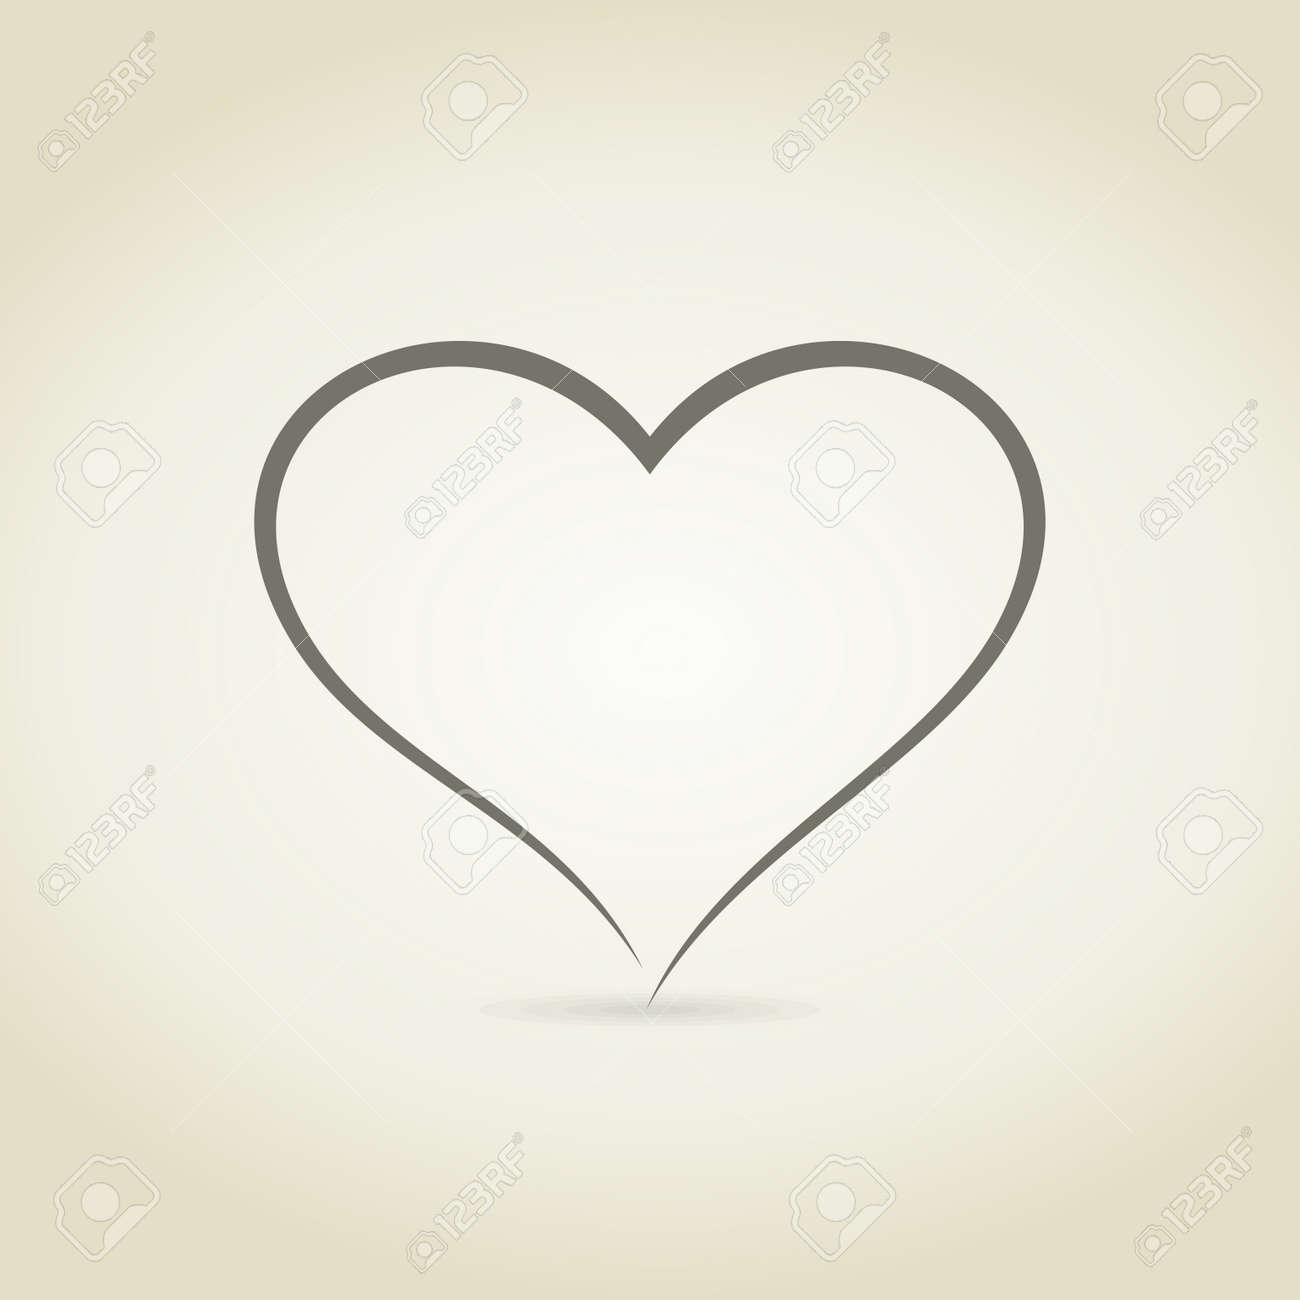 Heart in the form of the sketch. A vector illustration - 26708018